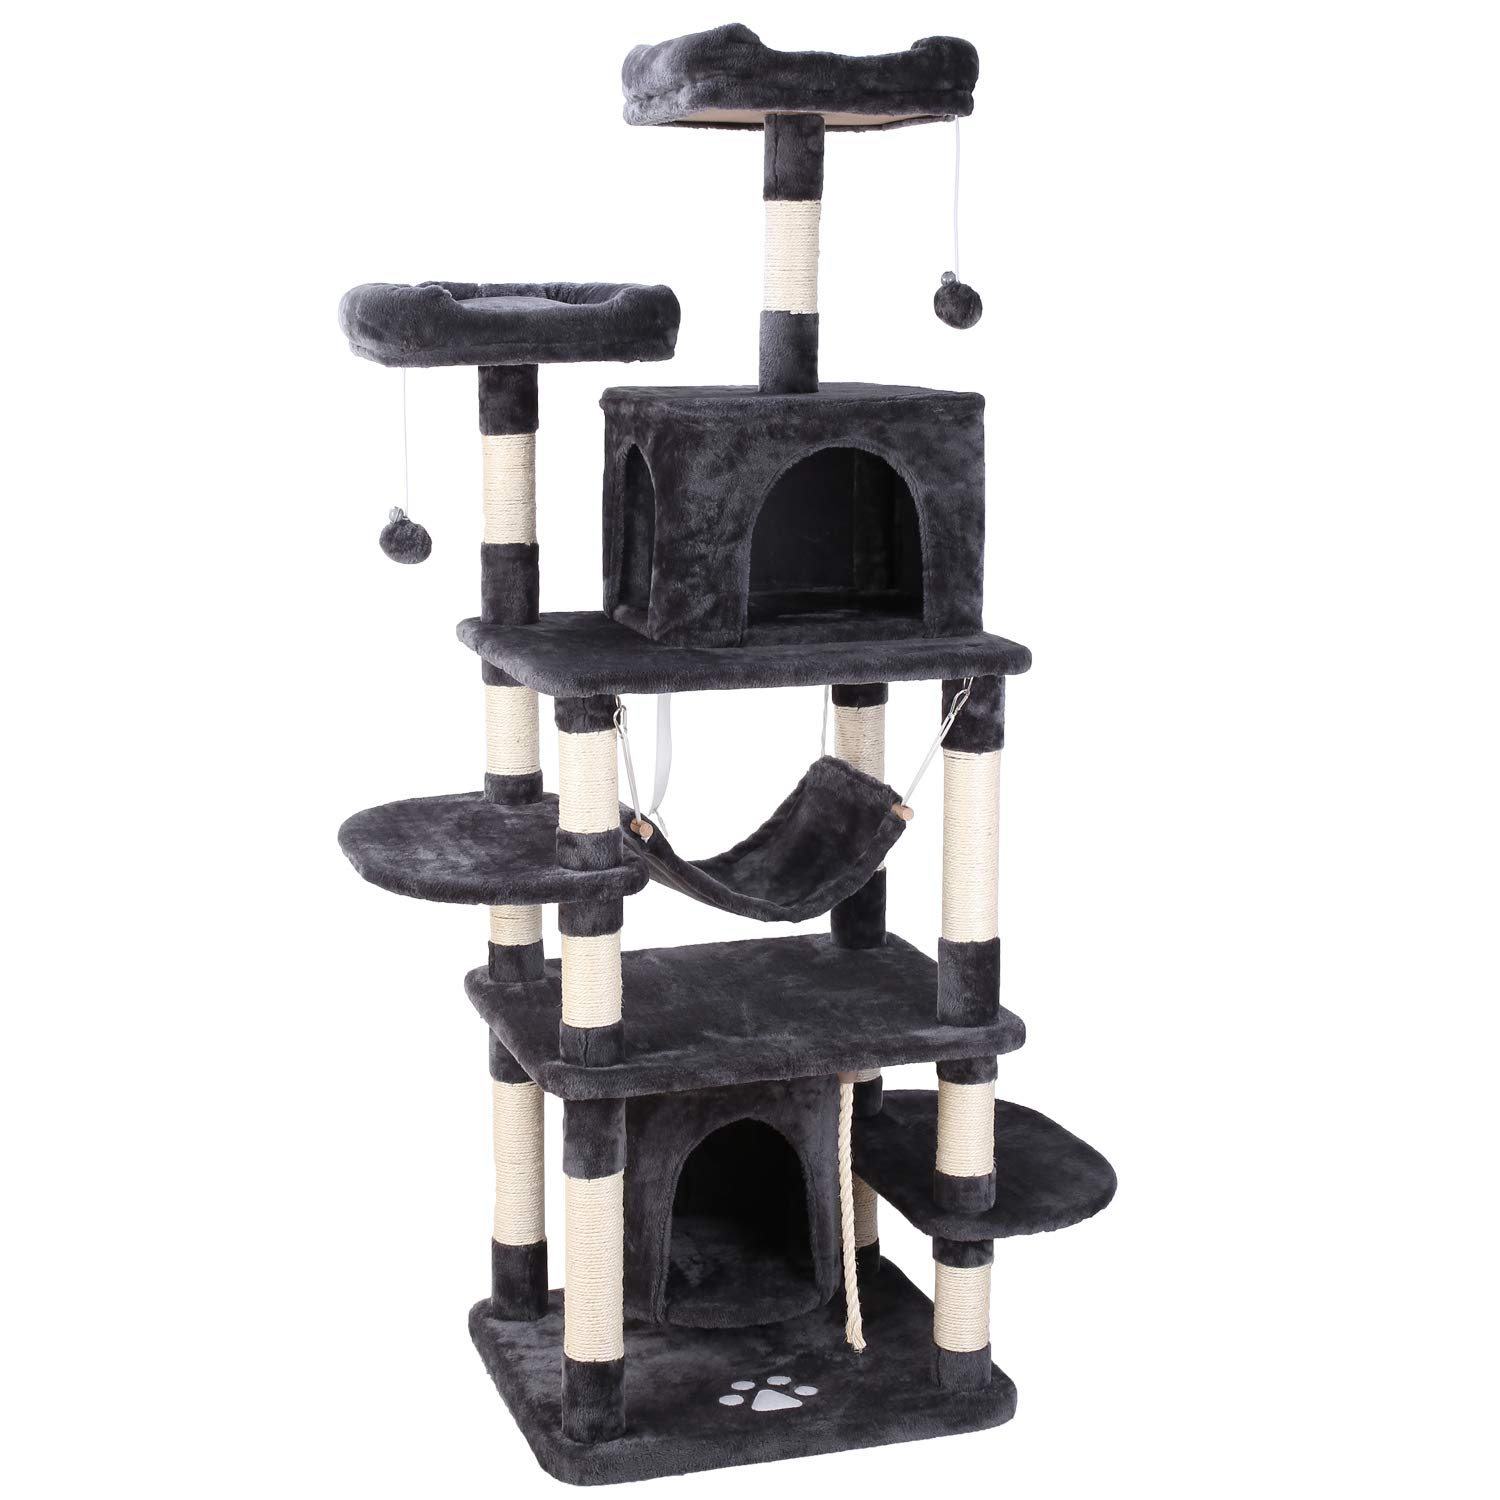 POTBY 67'' Multi-Level Cat Tree Play House Climber Activity Centre Tower Stand Furniture, with Scratching Posts, Hammock, Dangling Ball and Condo, Anti-toppling Devices, Suit for Kittens, Cats and Pet by POTBY (Image #1)